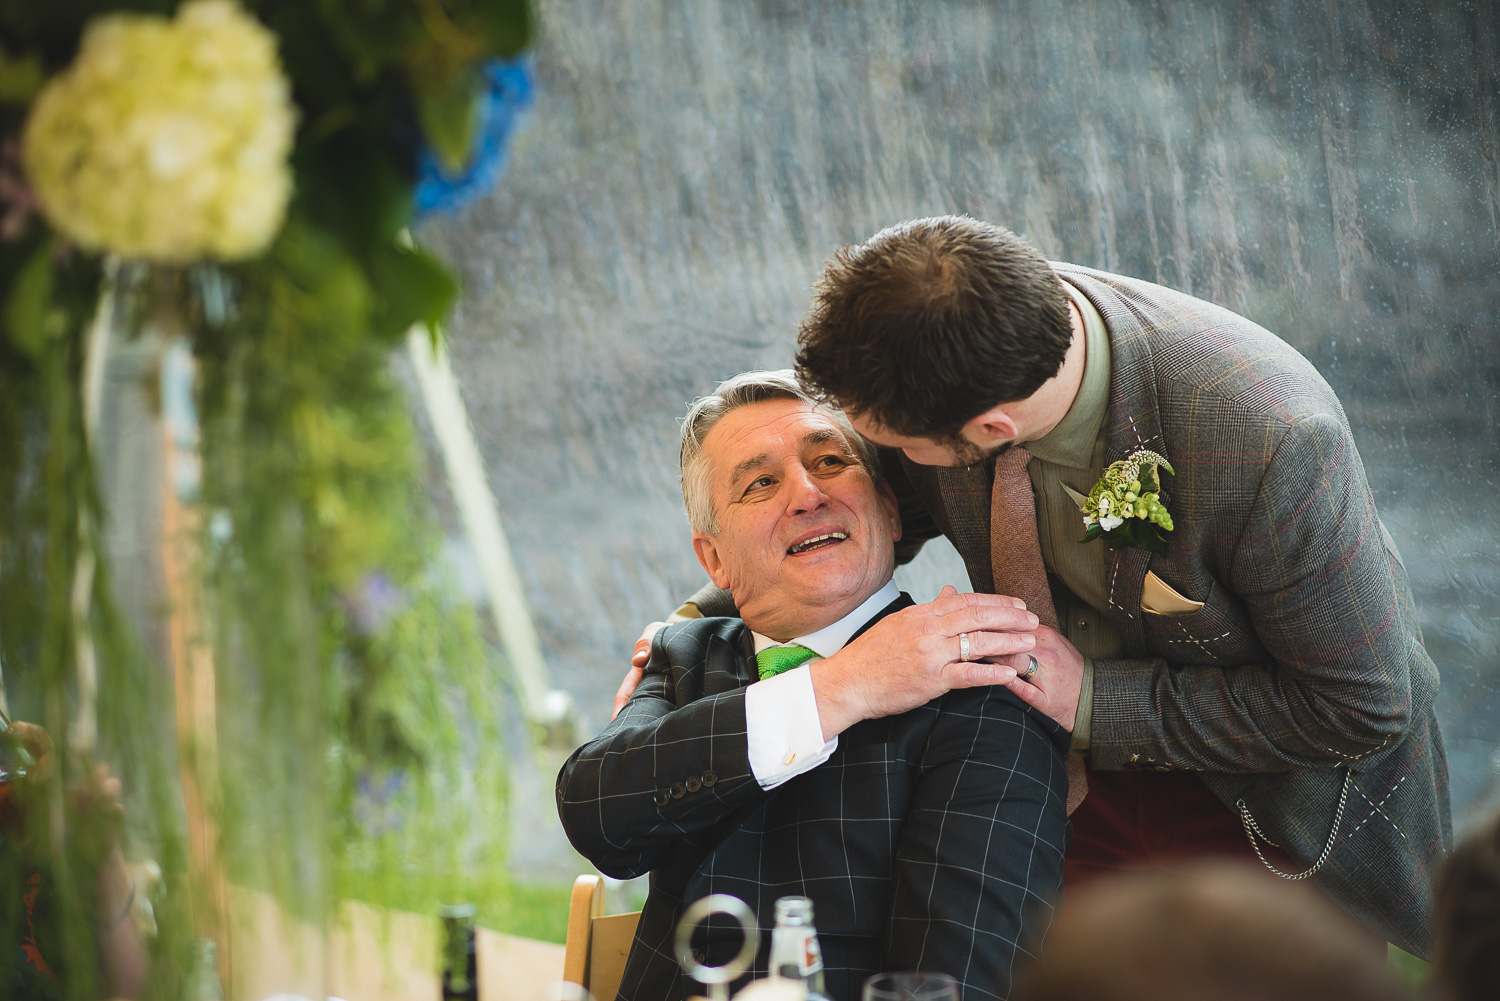 son hugs father at castle wedding in clevedon